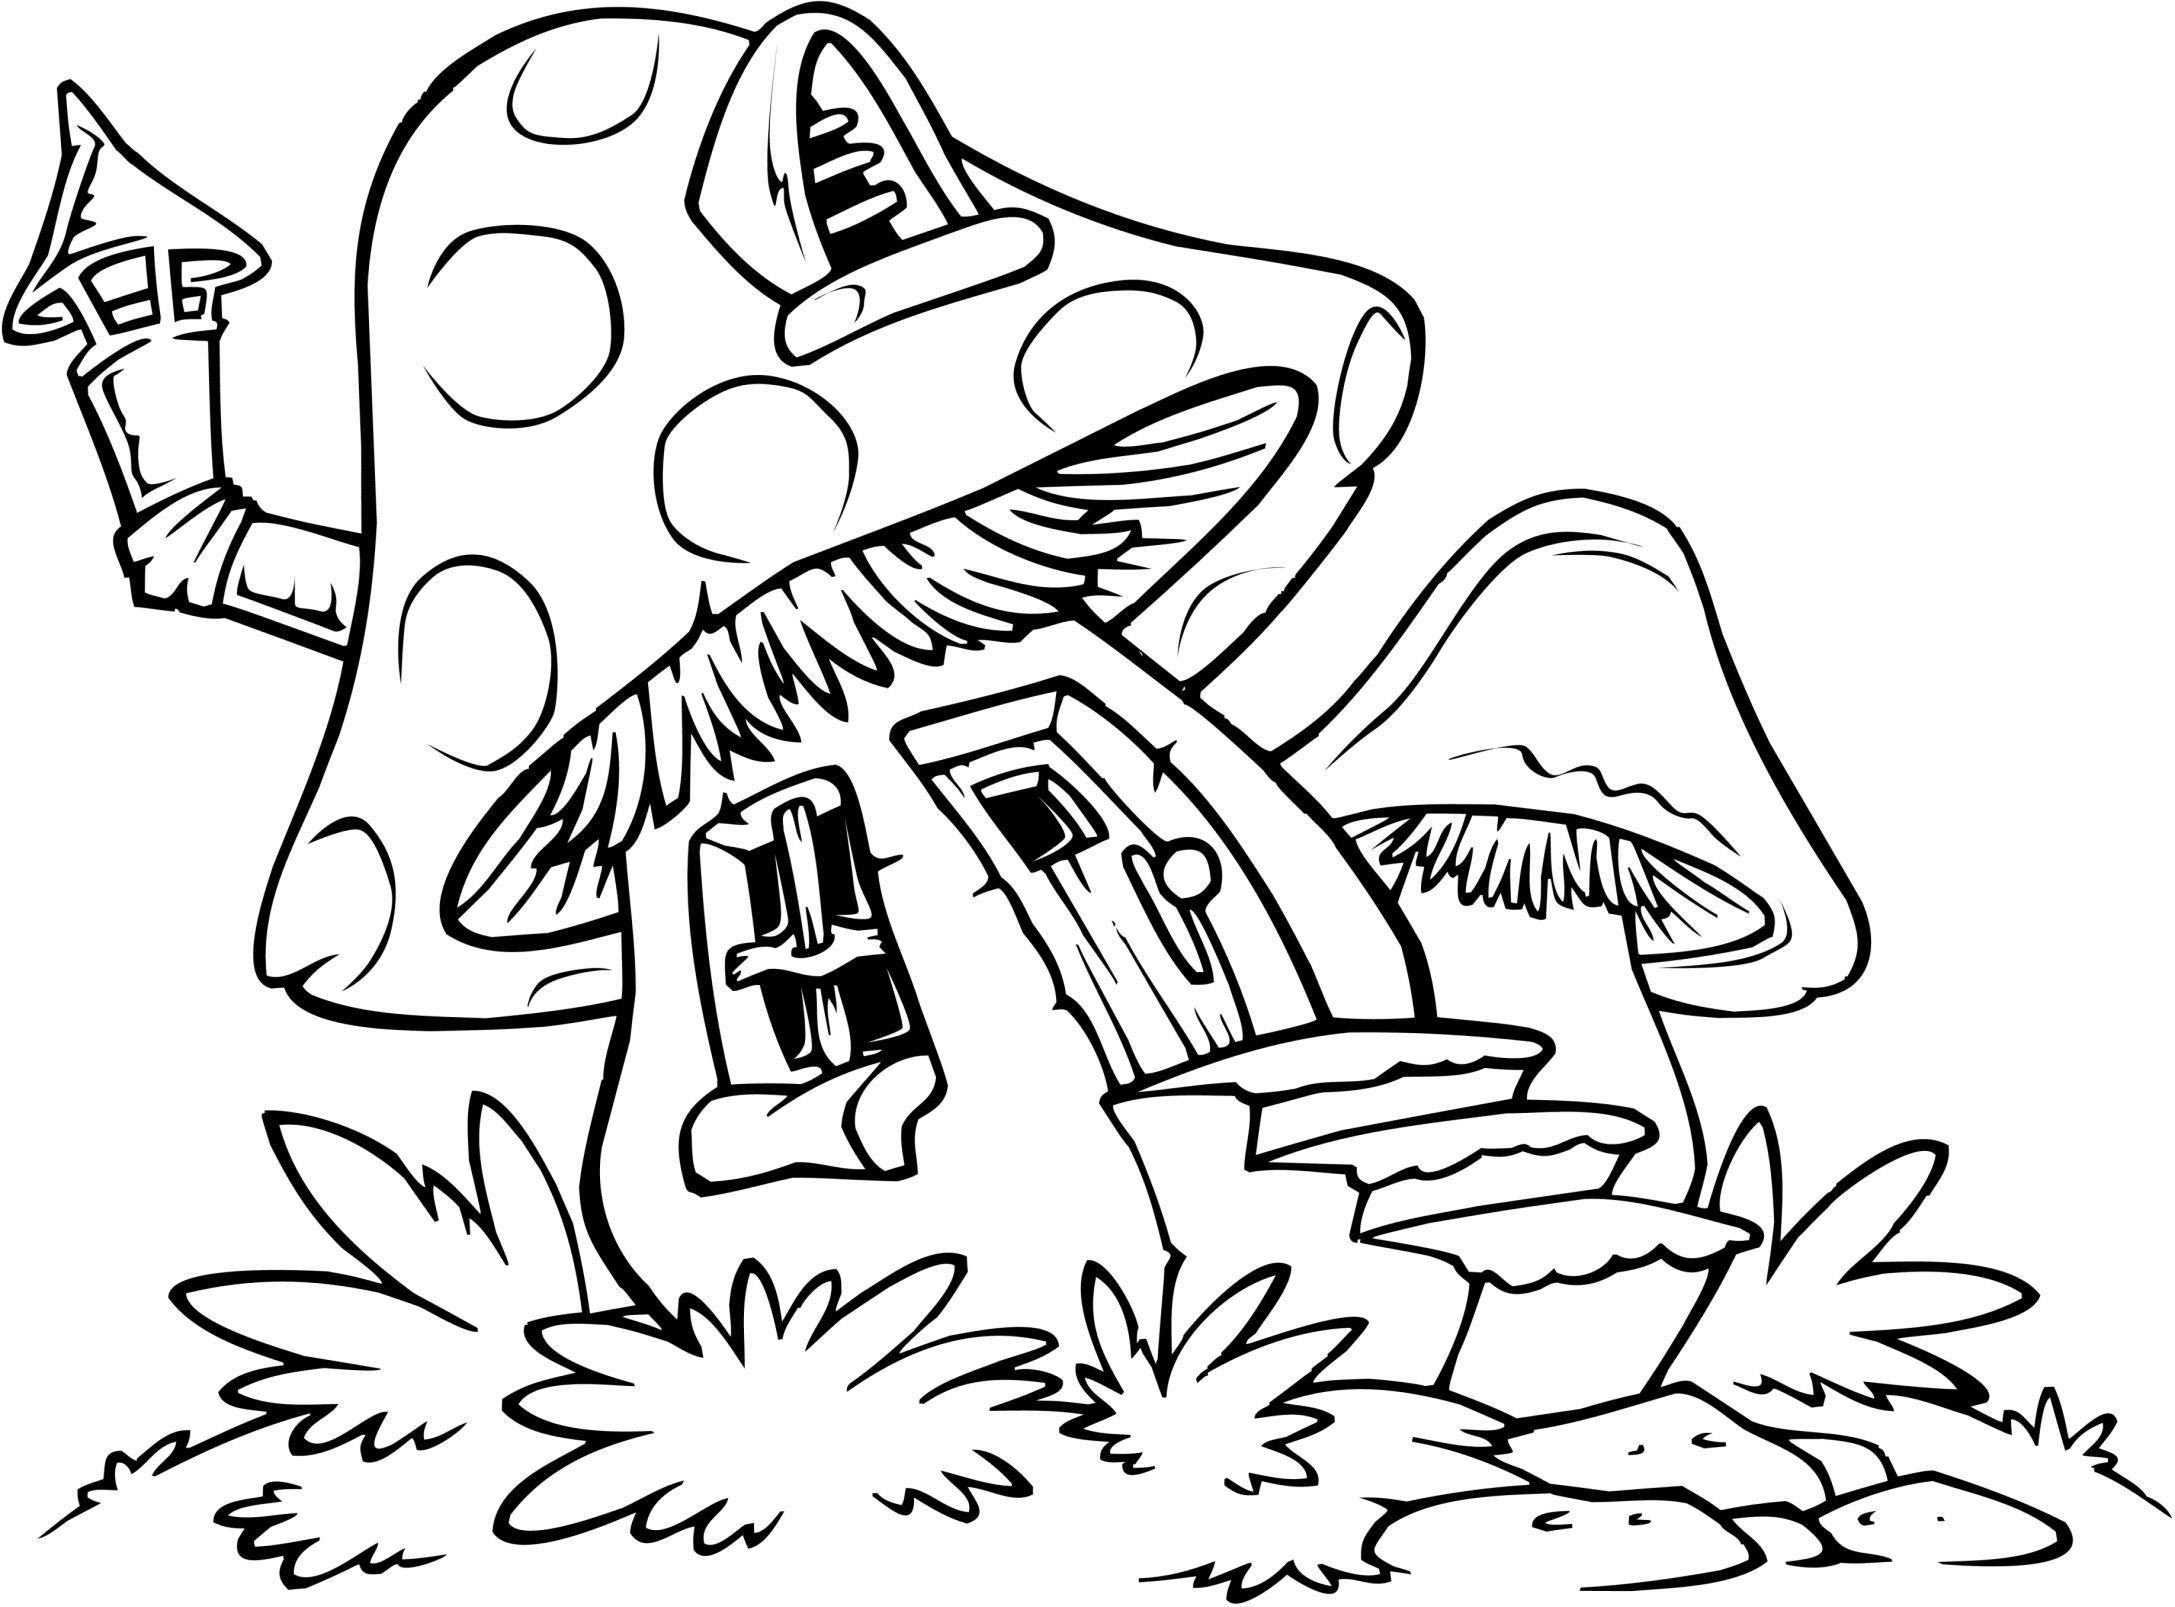 Smurf mushroom house coloring pages 2019 open coloring pages